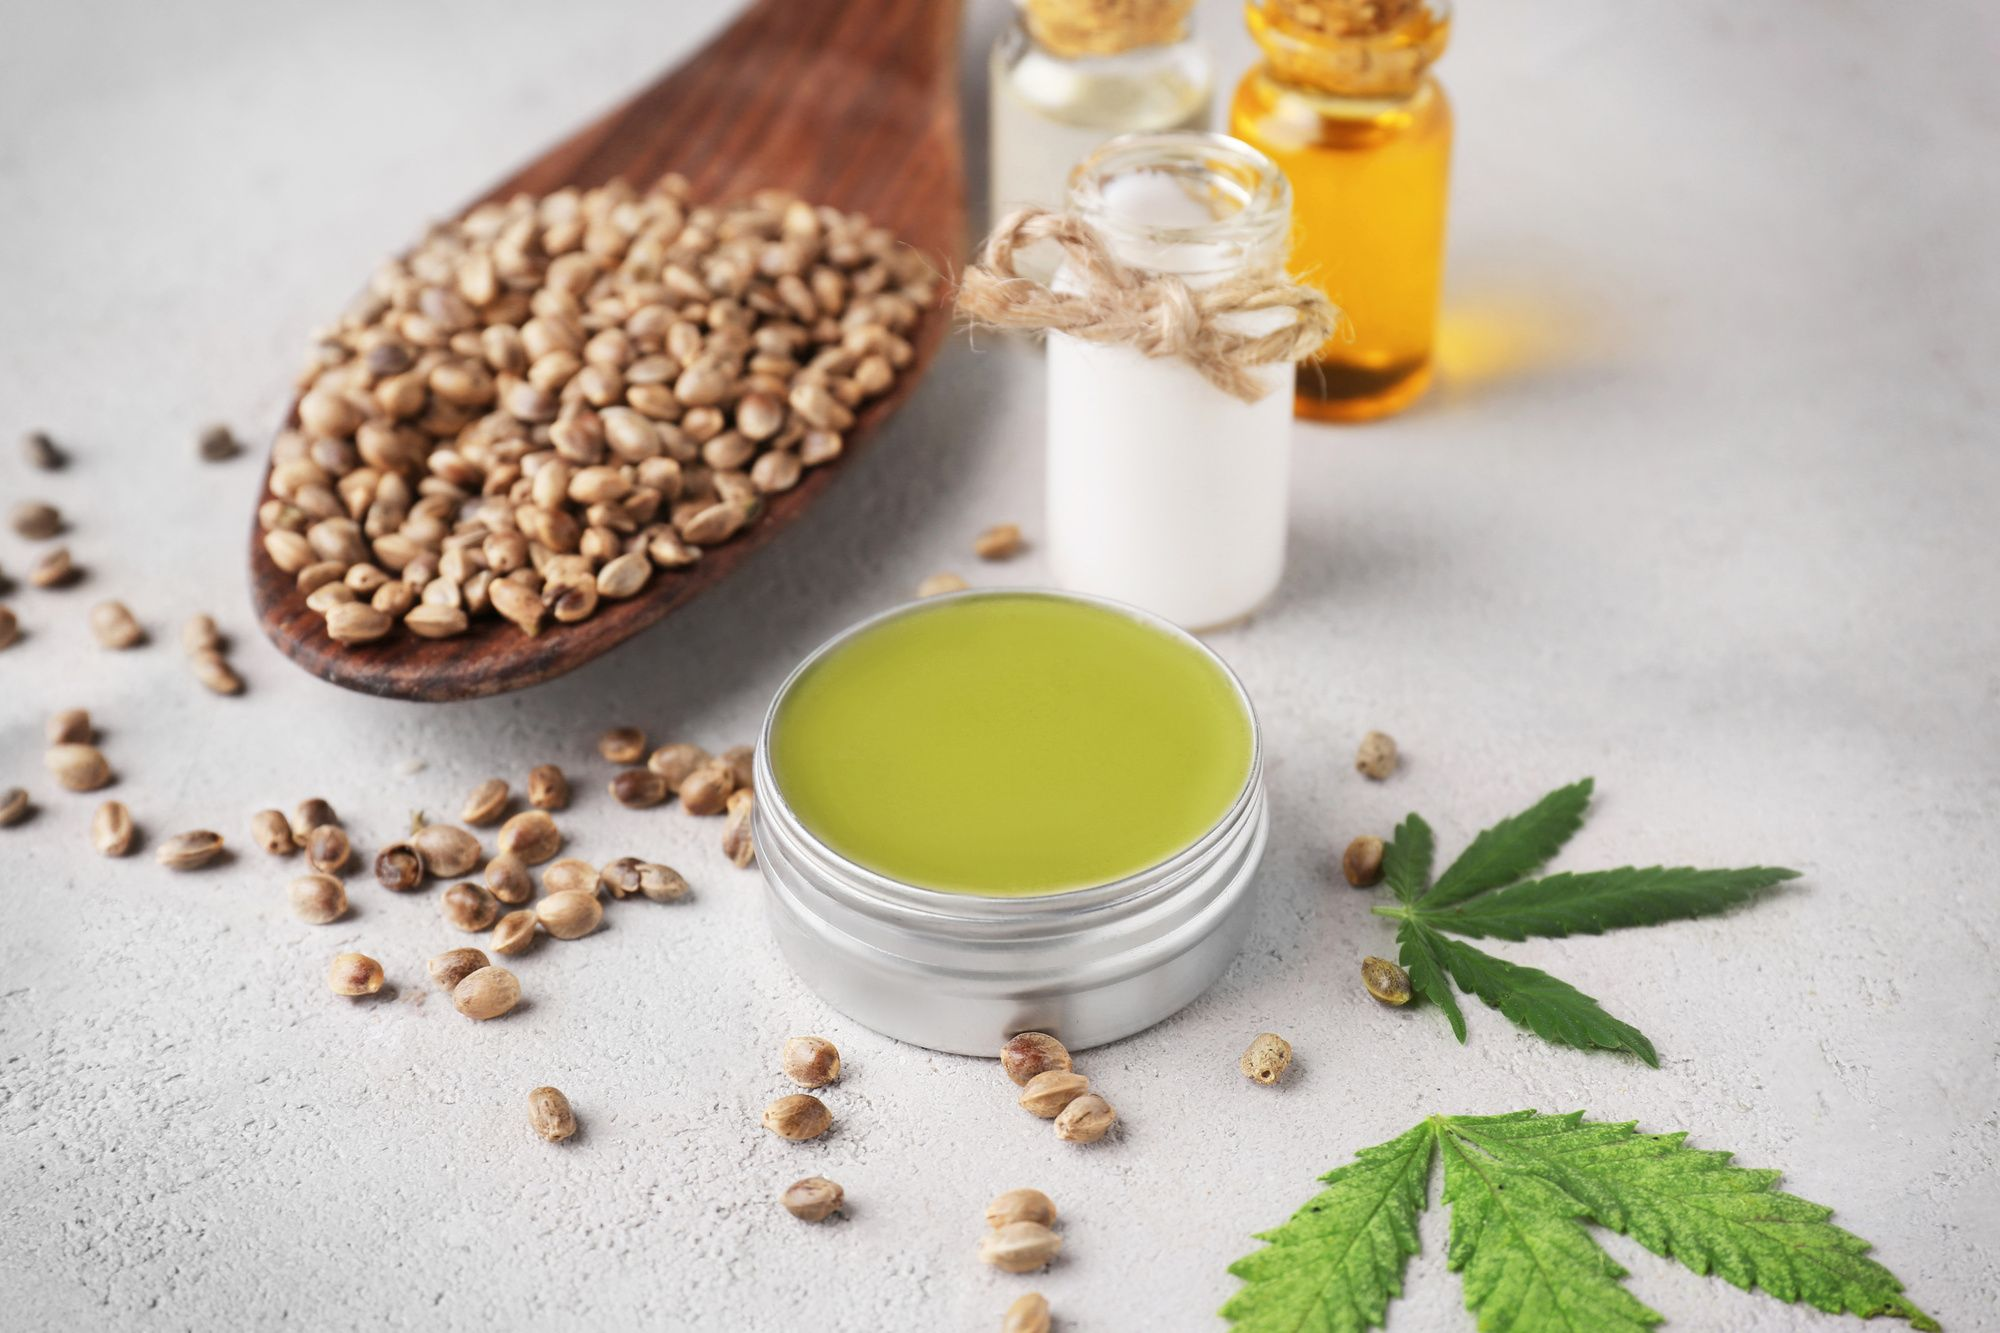 Debunking 3 Common Misconceptions About CBD